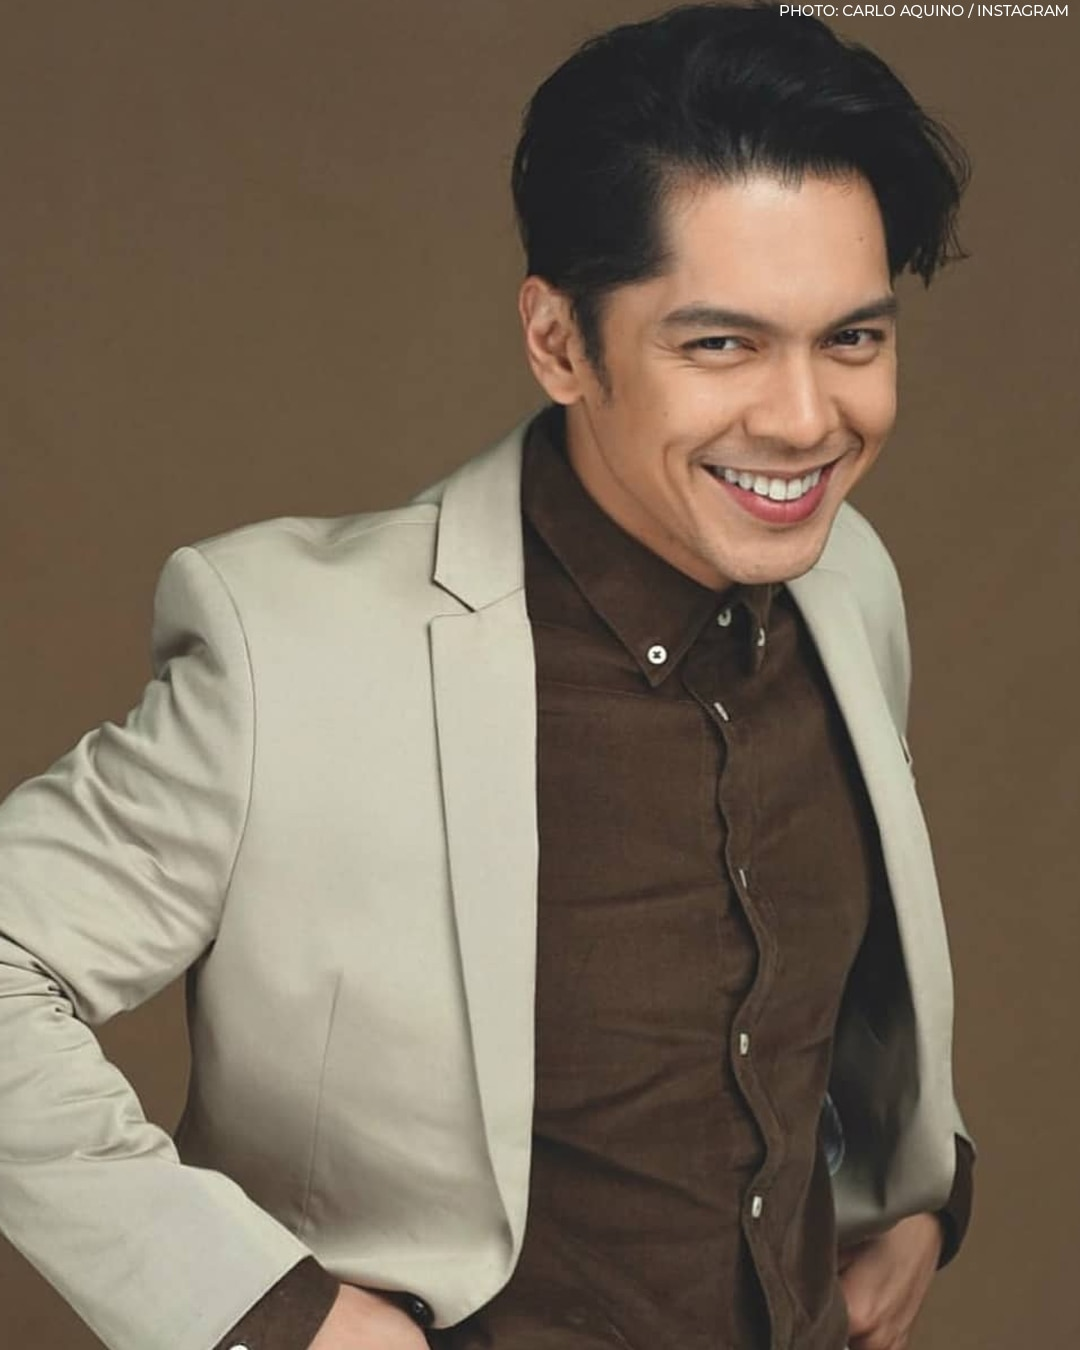 All the times Carlo Aquino stole our hearts